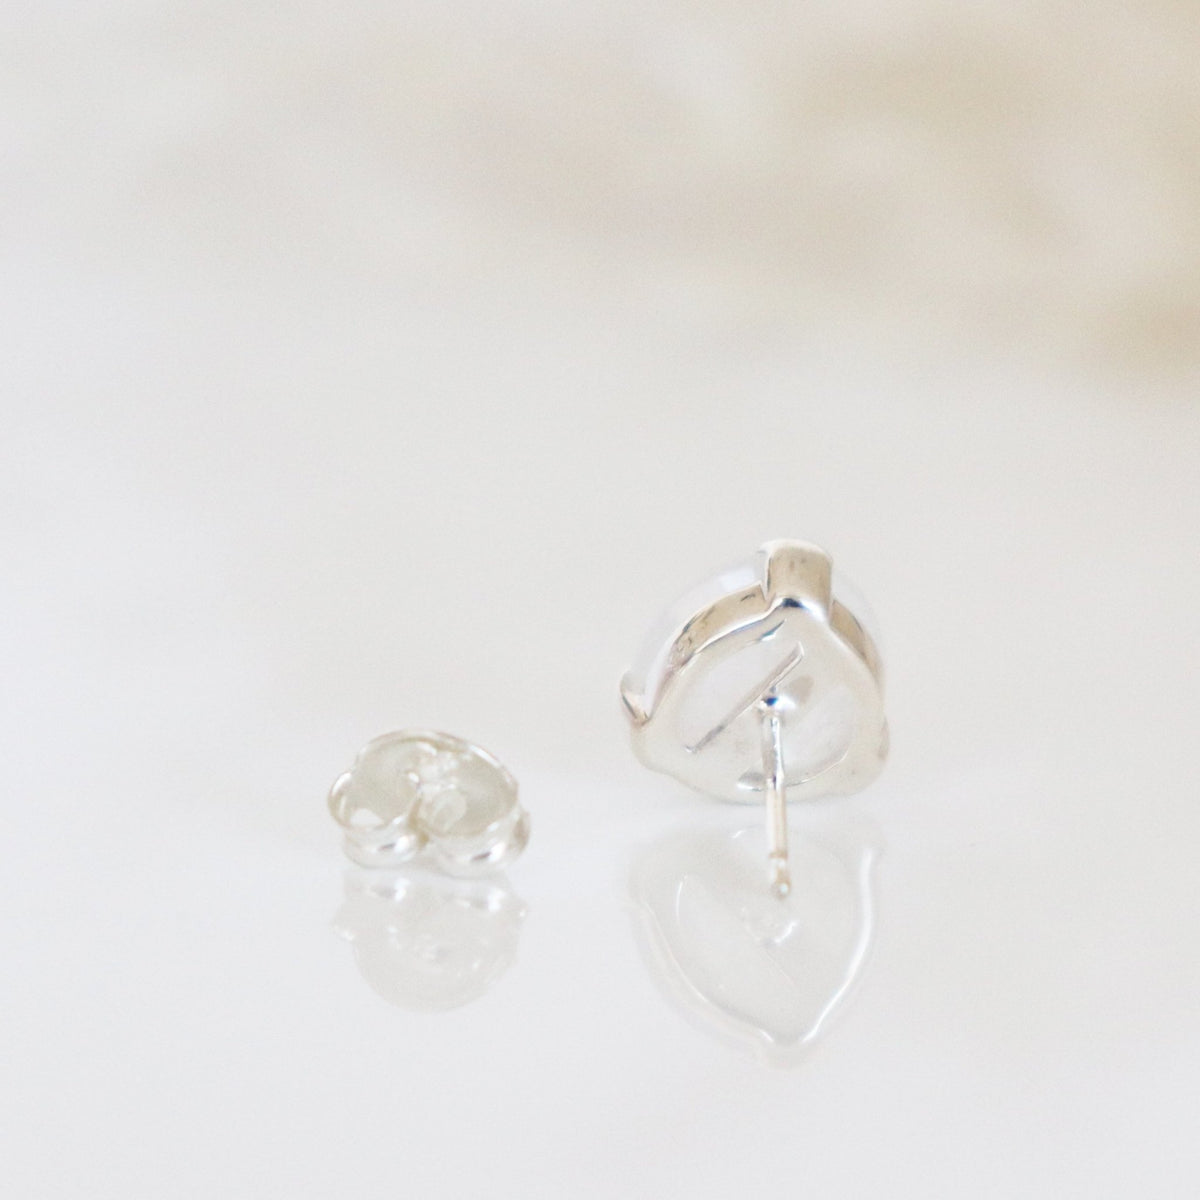 MINI FEARLESS STUDS - RAINBOW MOONSTONE & SILVER - SO PRETTY CARA COTTER